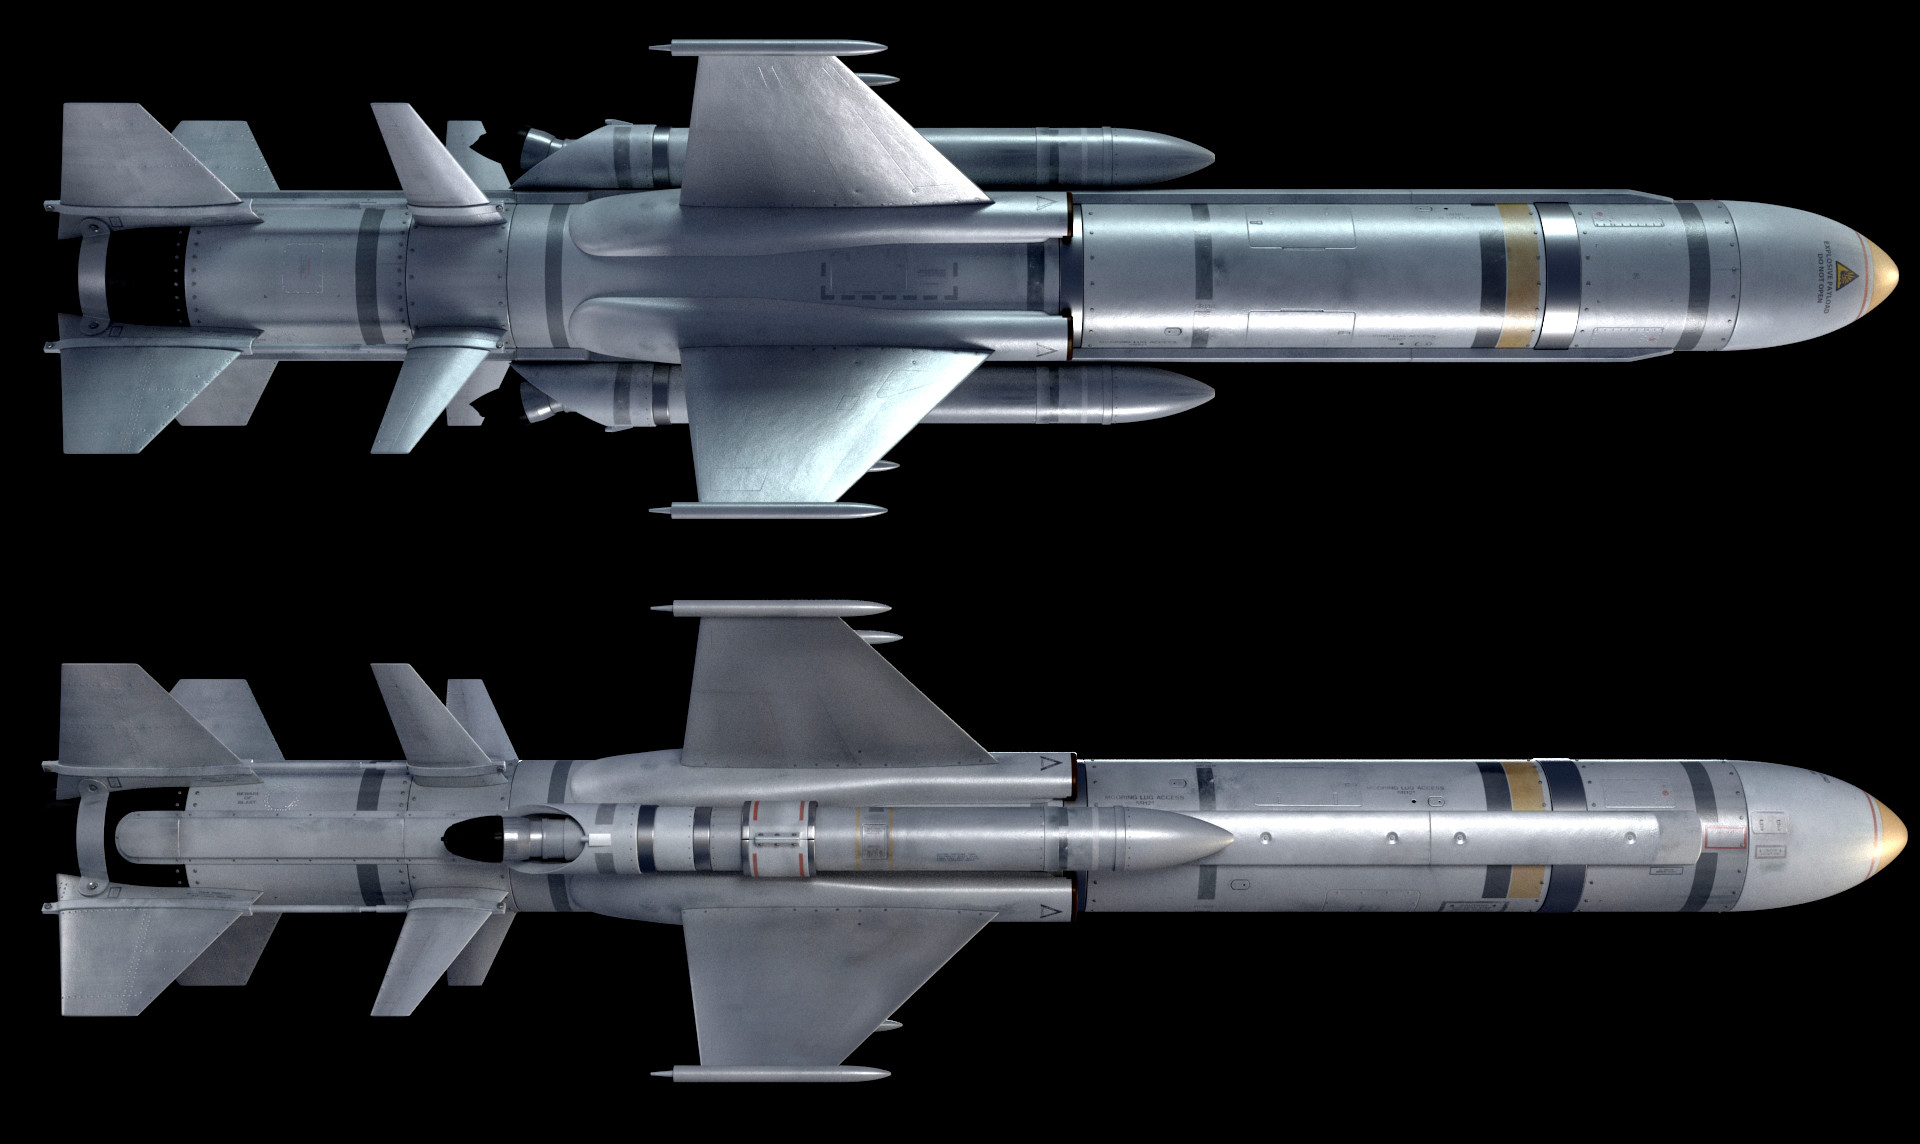 Top and side view.  Not an overly difficult or complex model, but it was a lot of fun to be able to make a quick rocket.